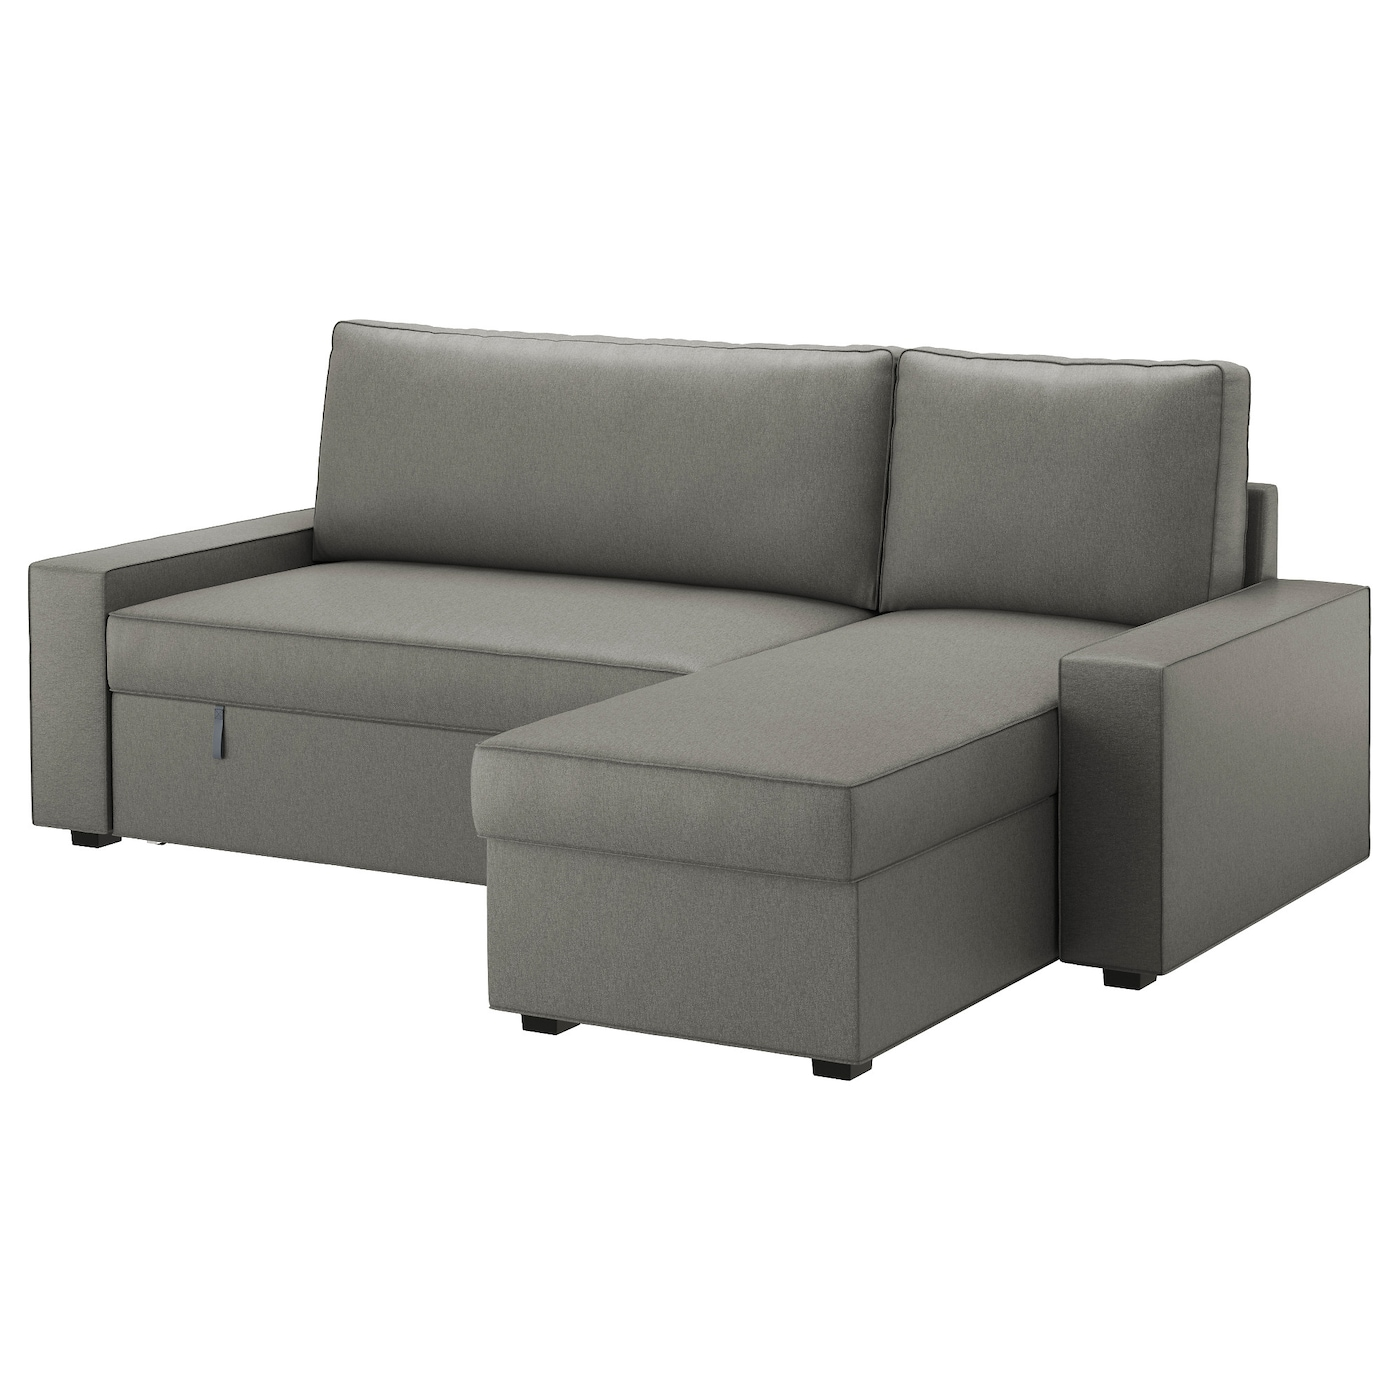 Exceptionnel IKEA VILASUND Sofa Bed With Chaise Longue